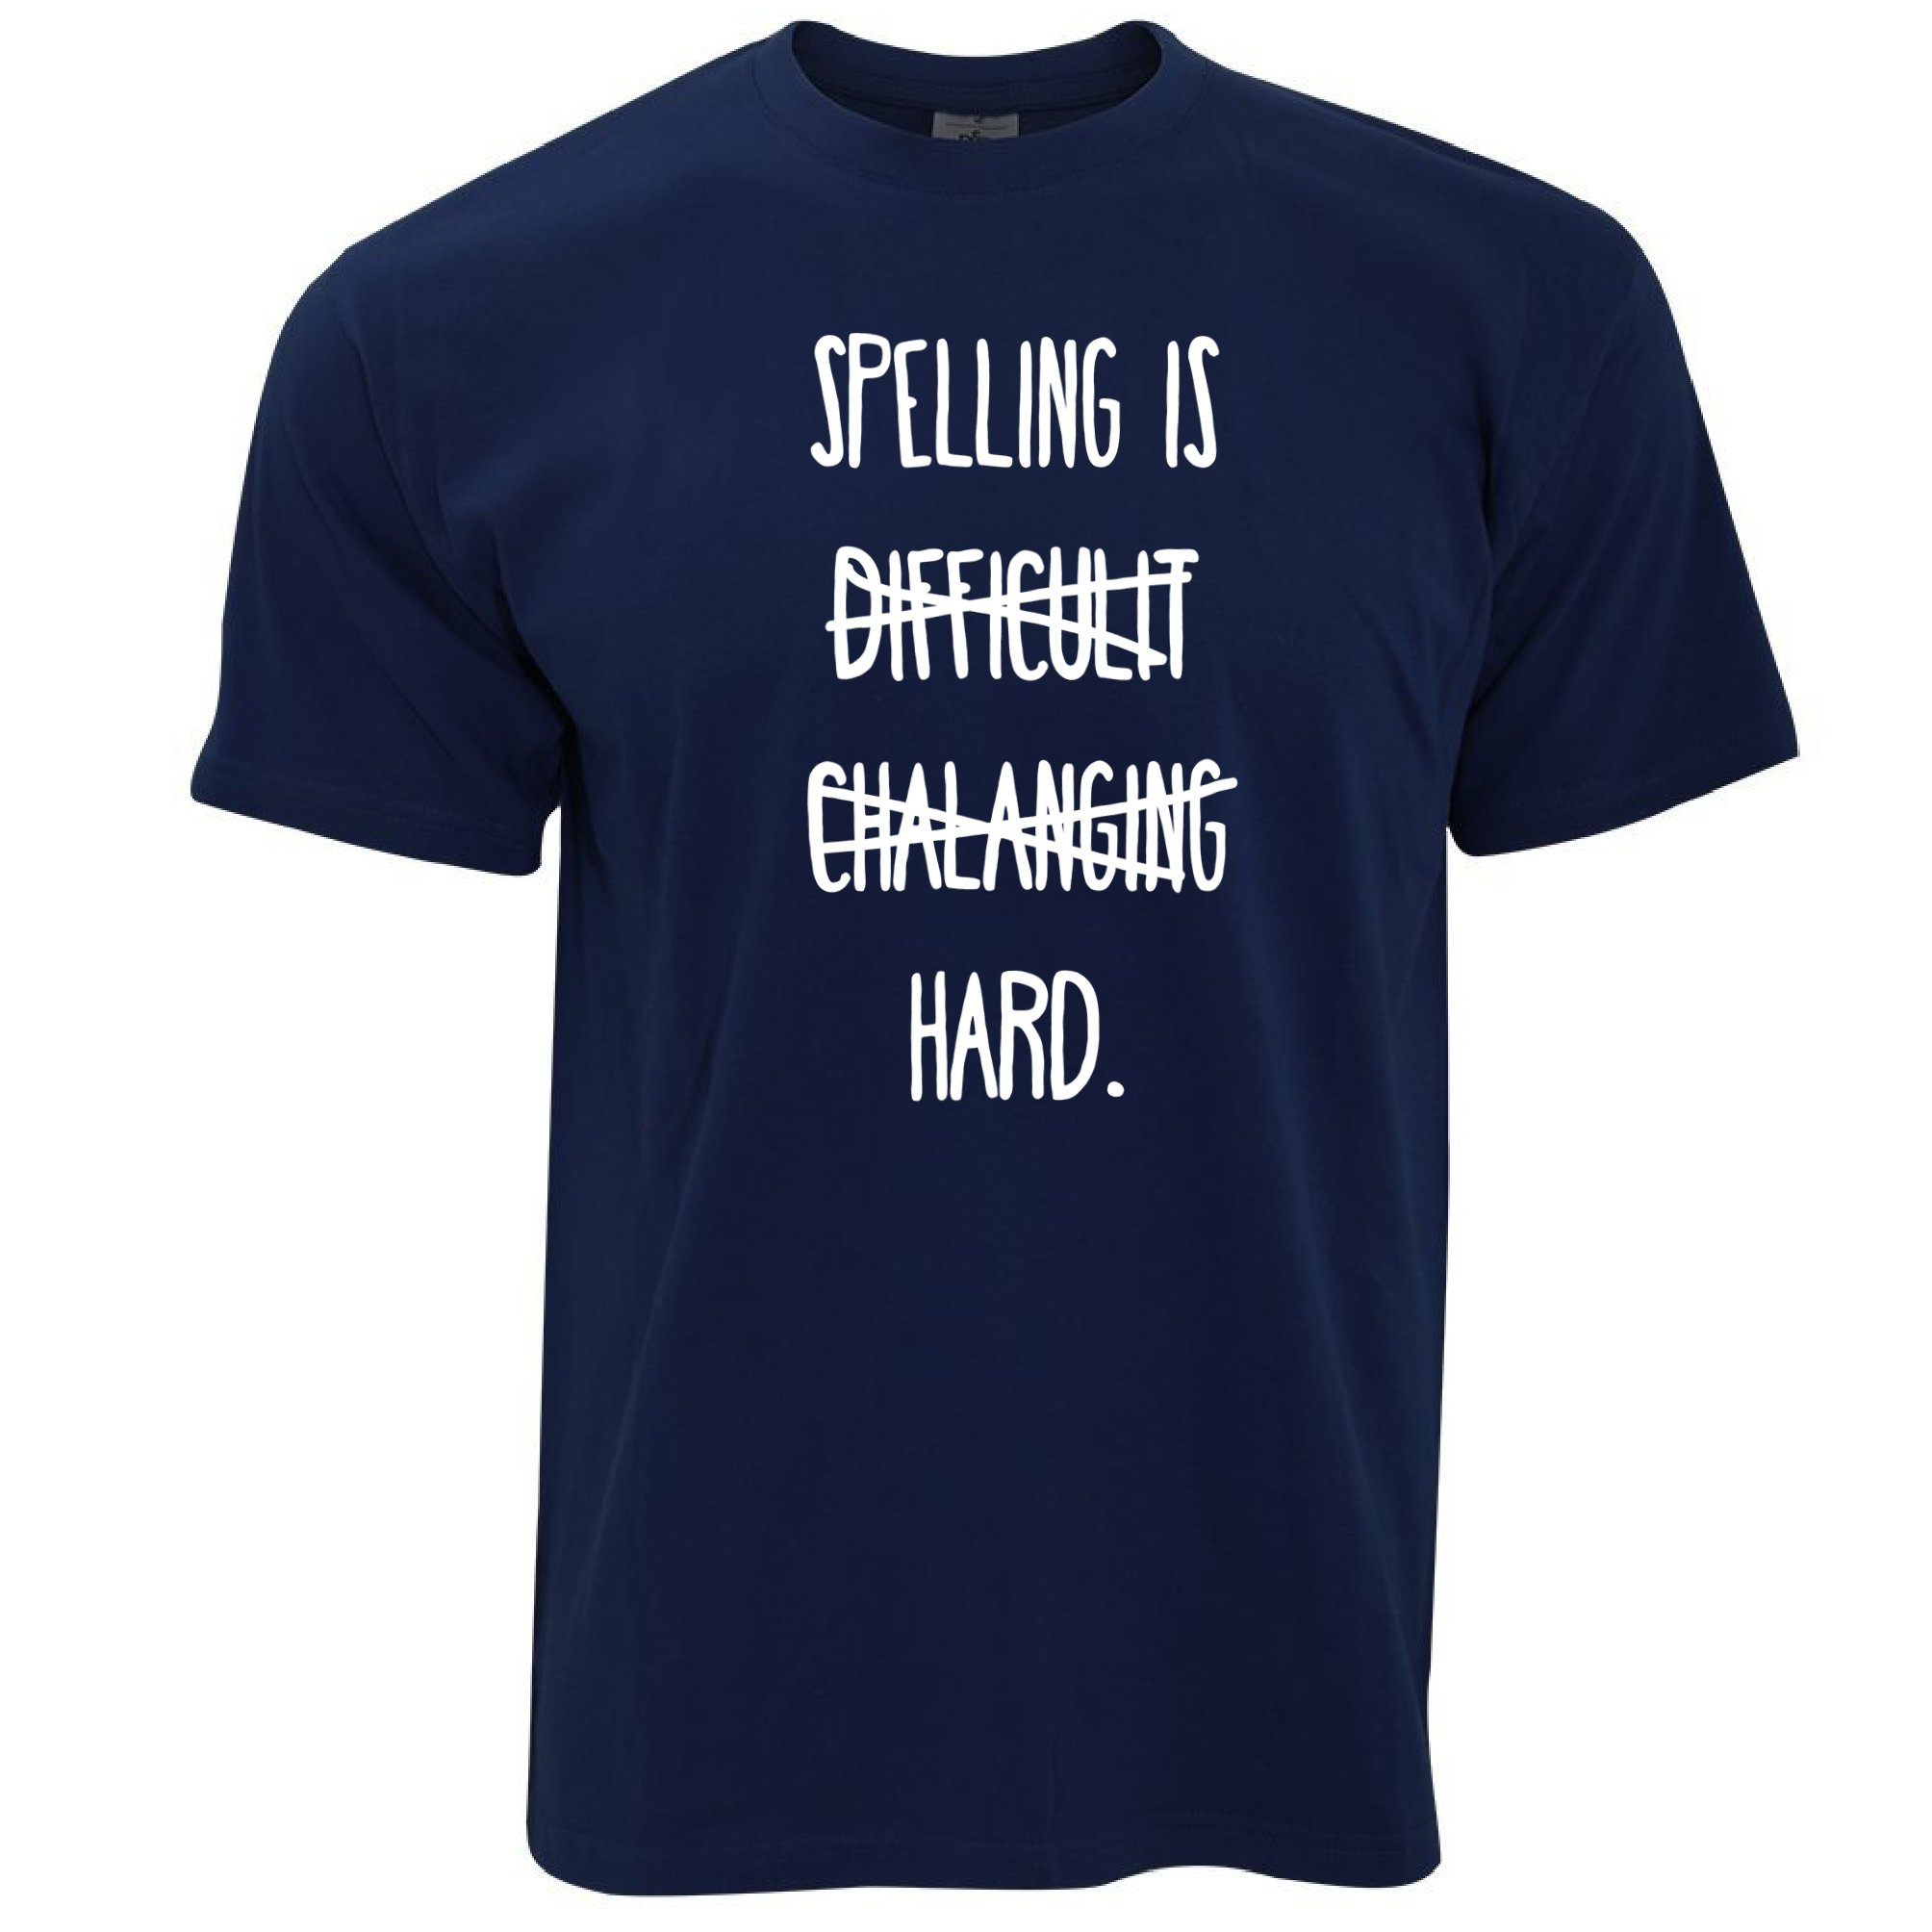 Tim And Ted Funny T Shirt Spelling Is Difficult Challenging Hard 8574